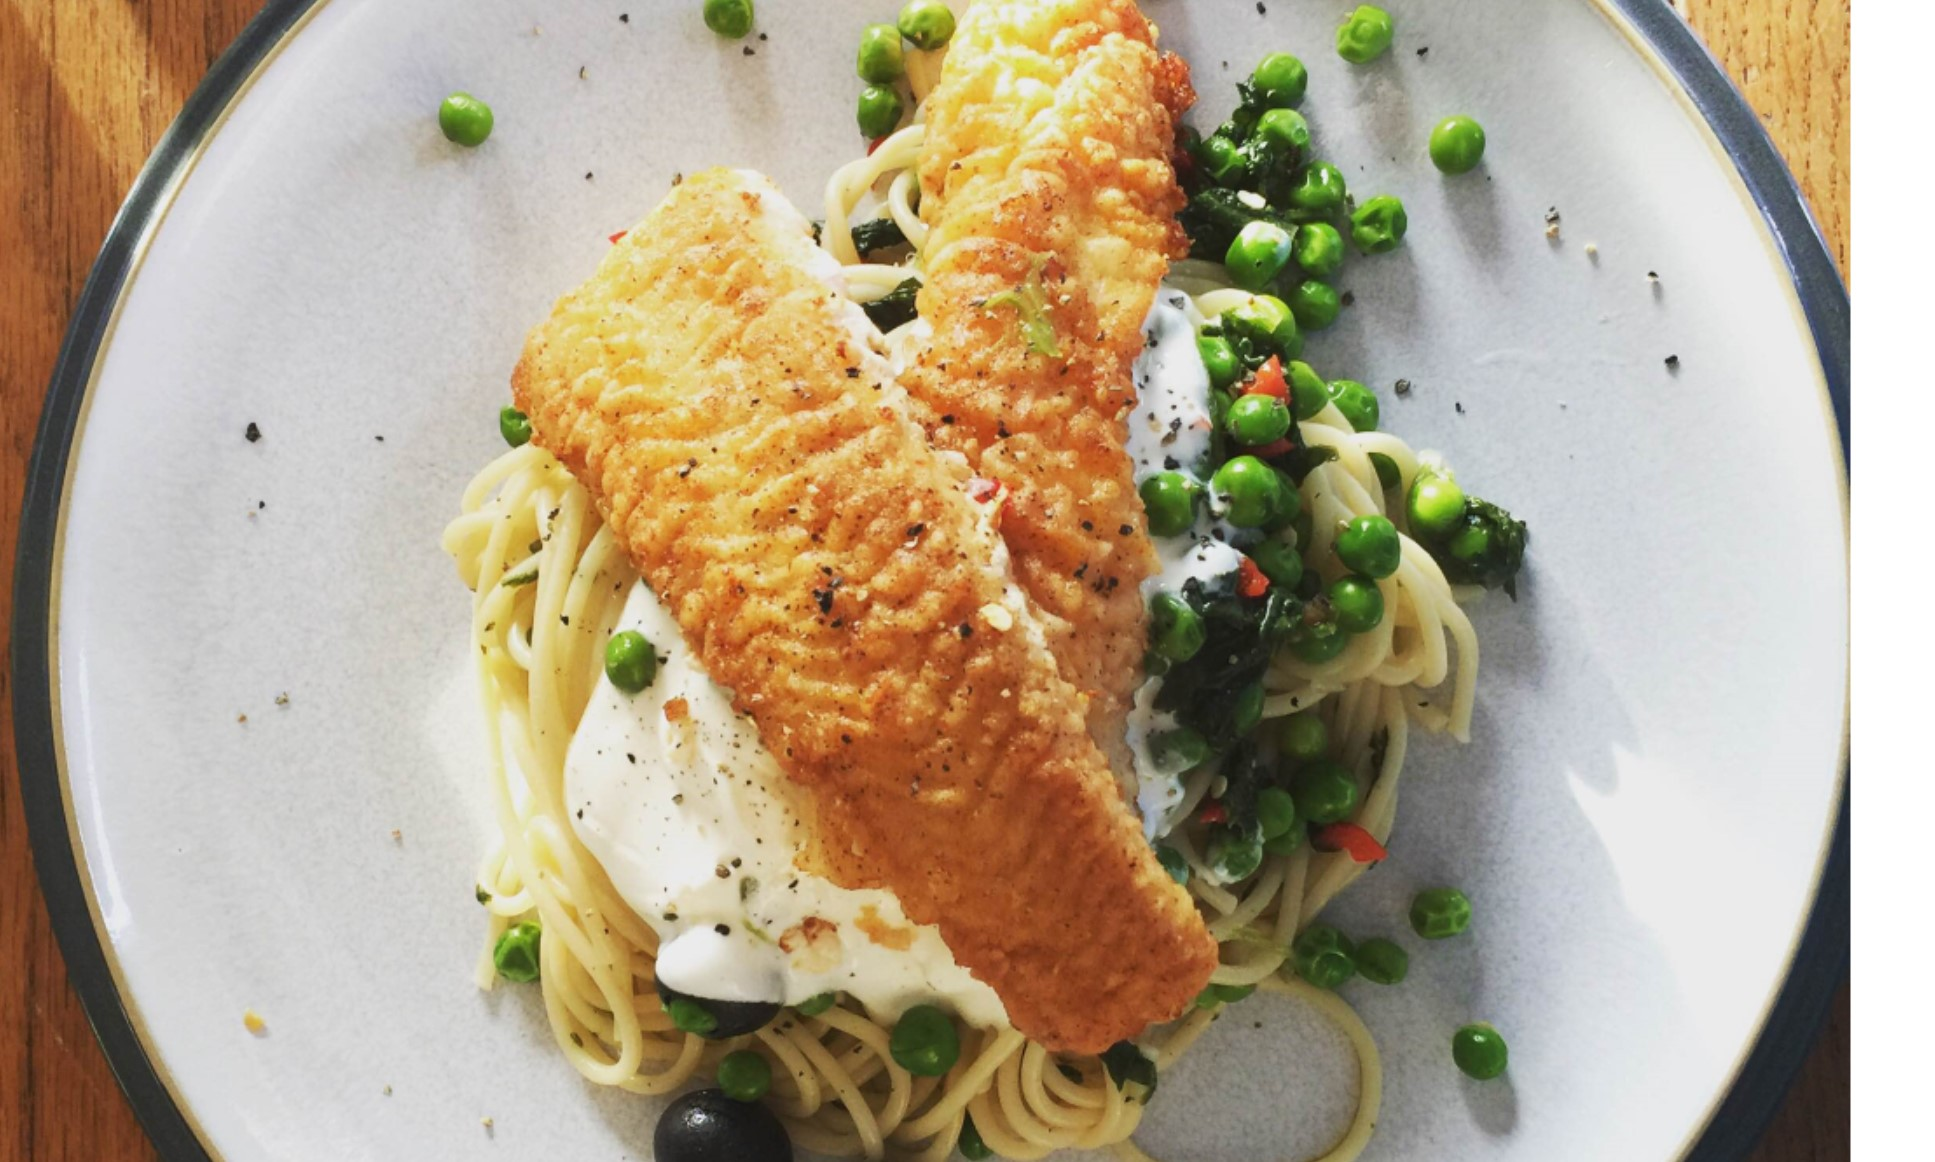 Forkbead with Spaghetti, peas, spinach & sour cream